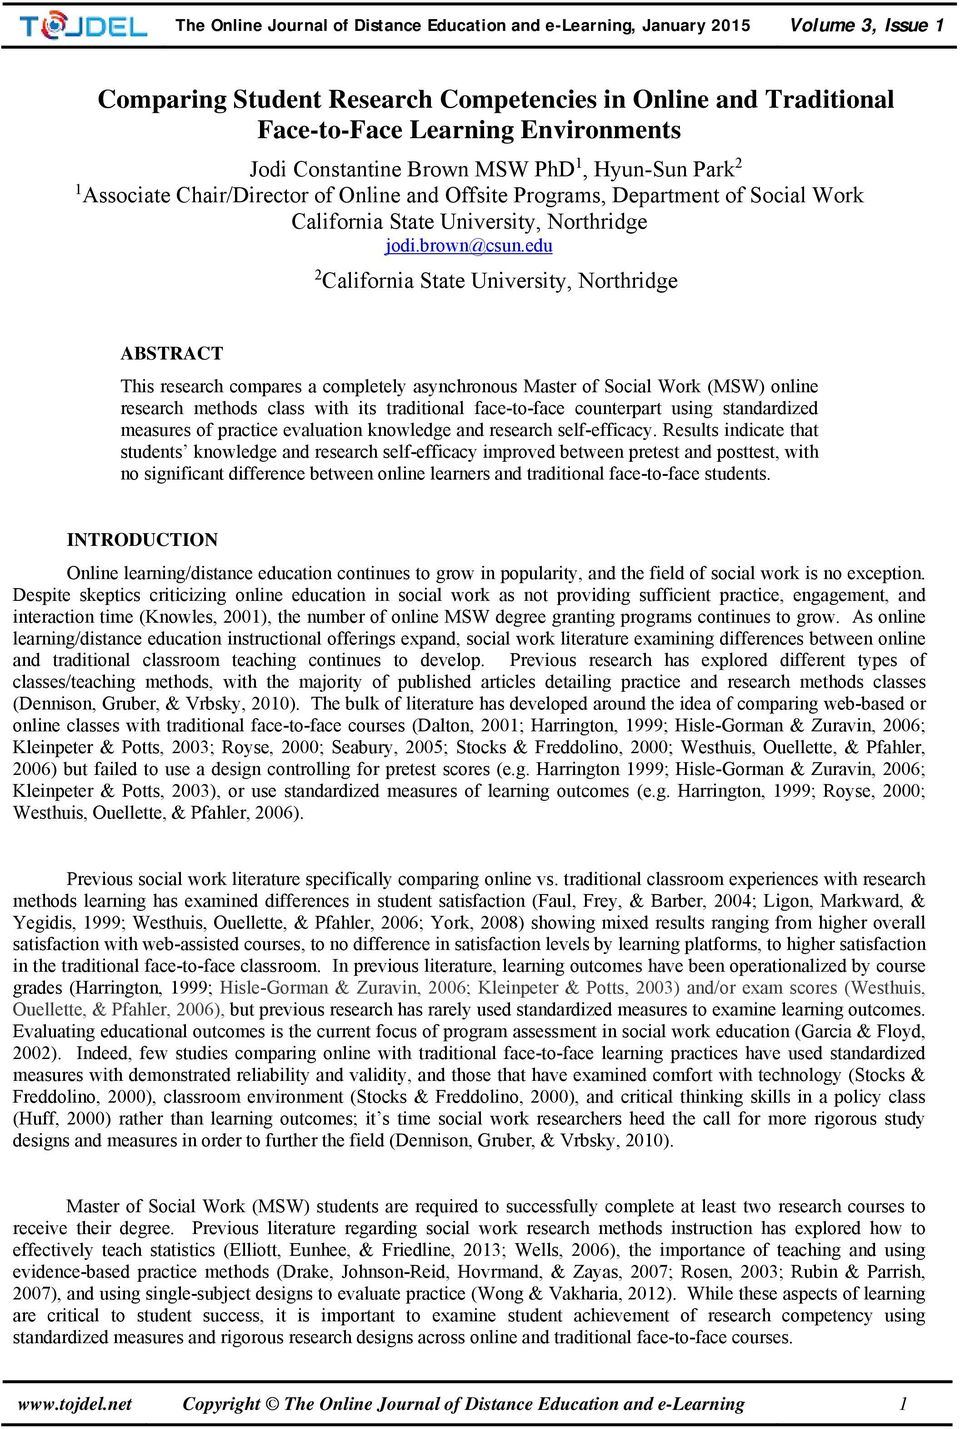 edu 2 California State University, Northridge ABSTRACT This research compares a completely asynchronous Master of Social Work (MSW) online research methods class with its traditional face-to-face